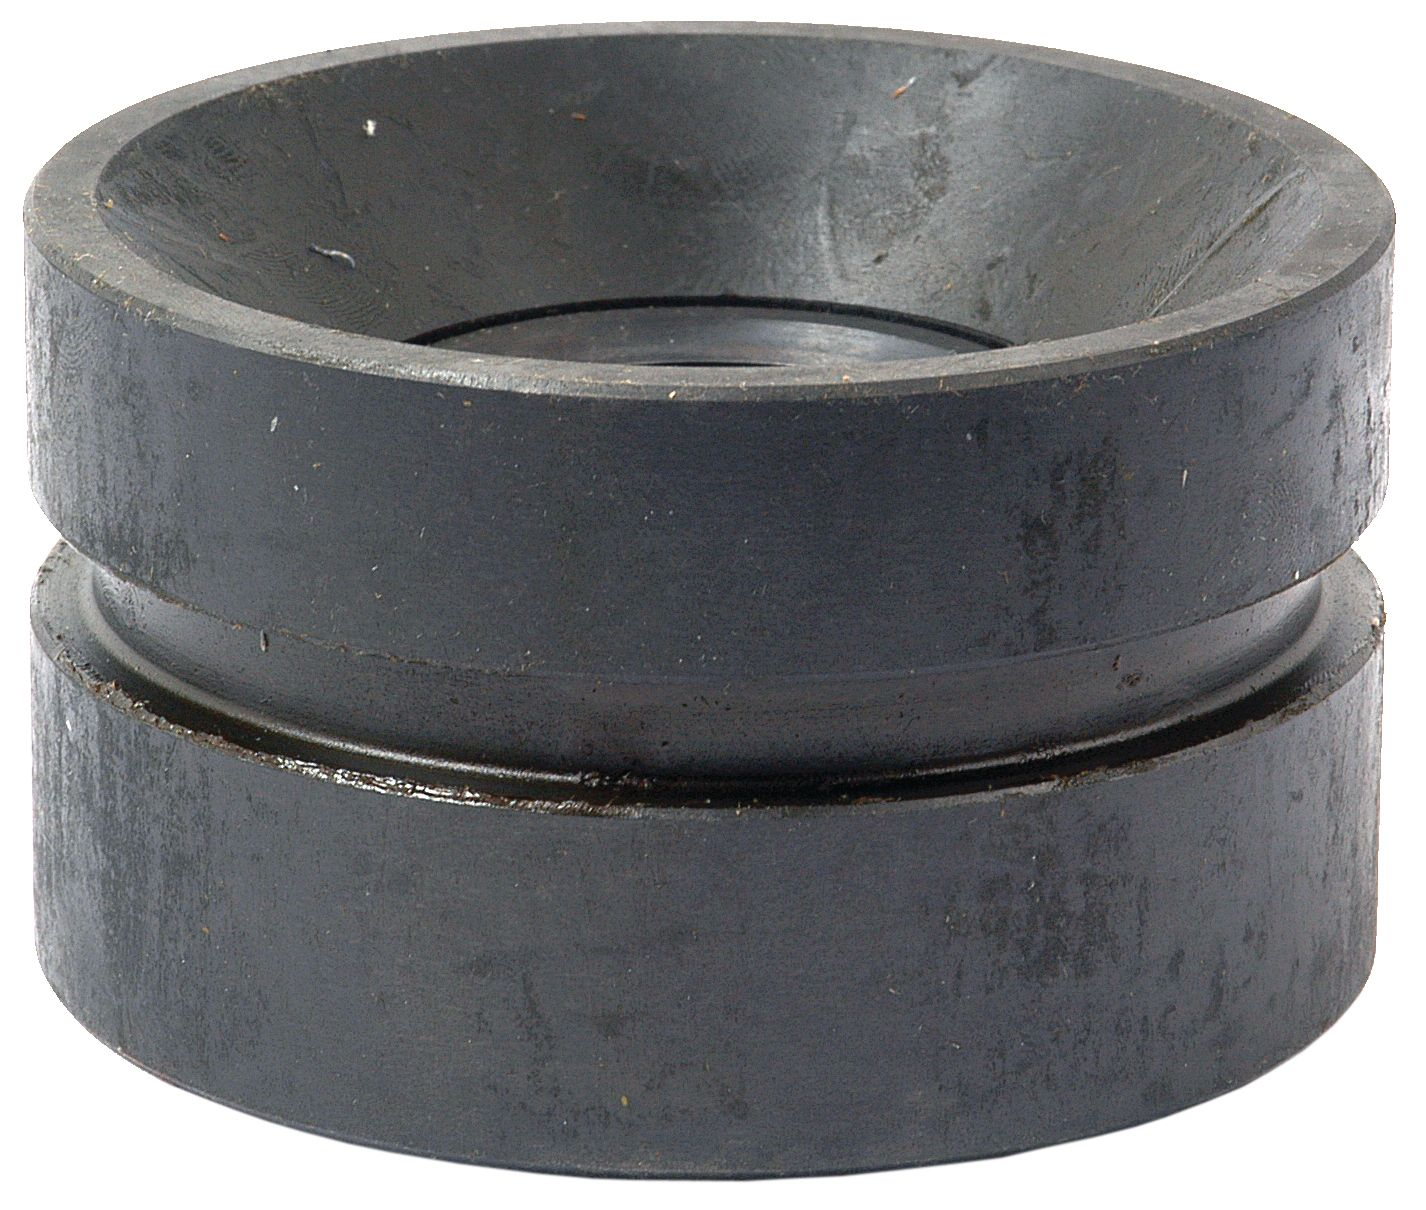 Allis Chalmers Piston Sleeves : Buy allis chalmers tractor hydraulics spare parts free